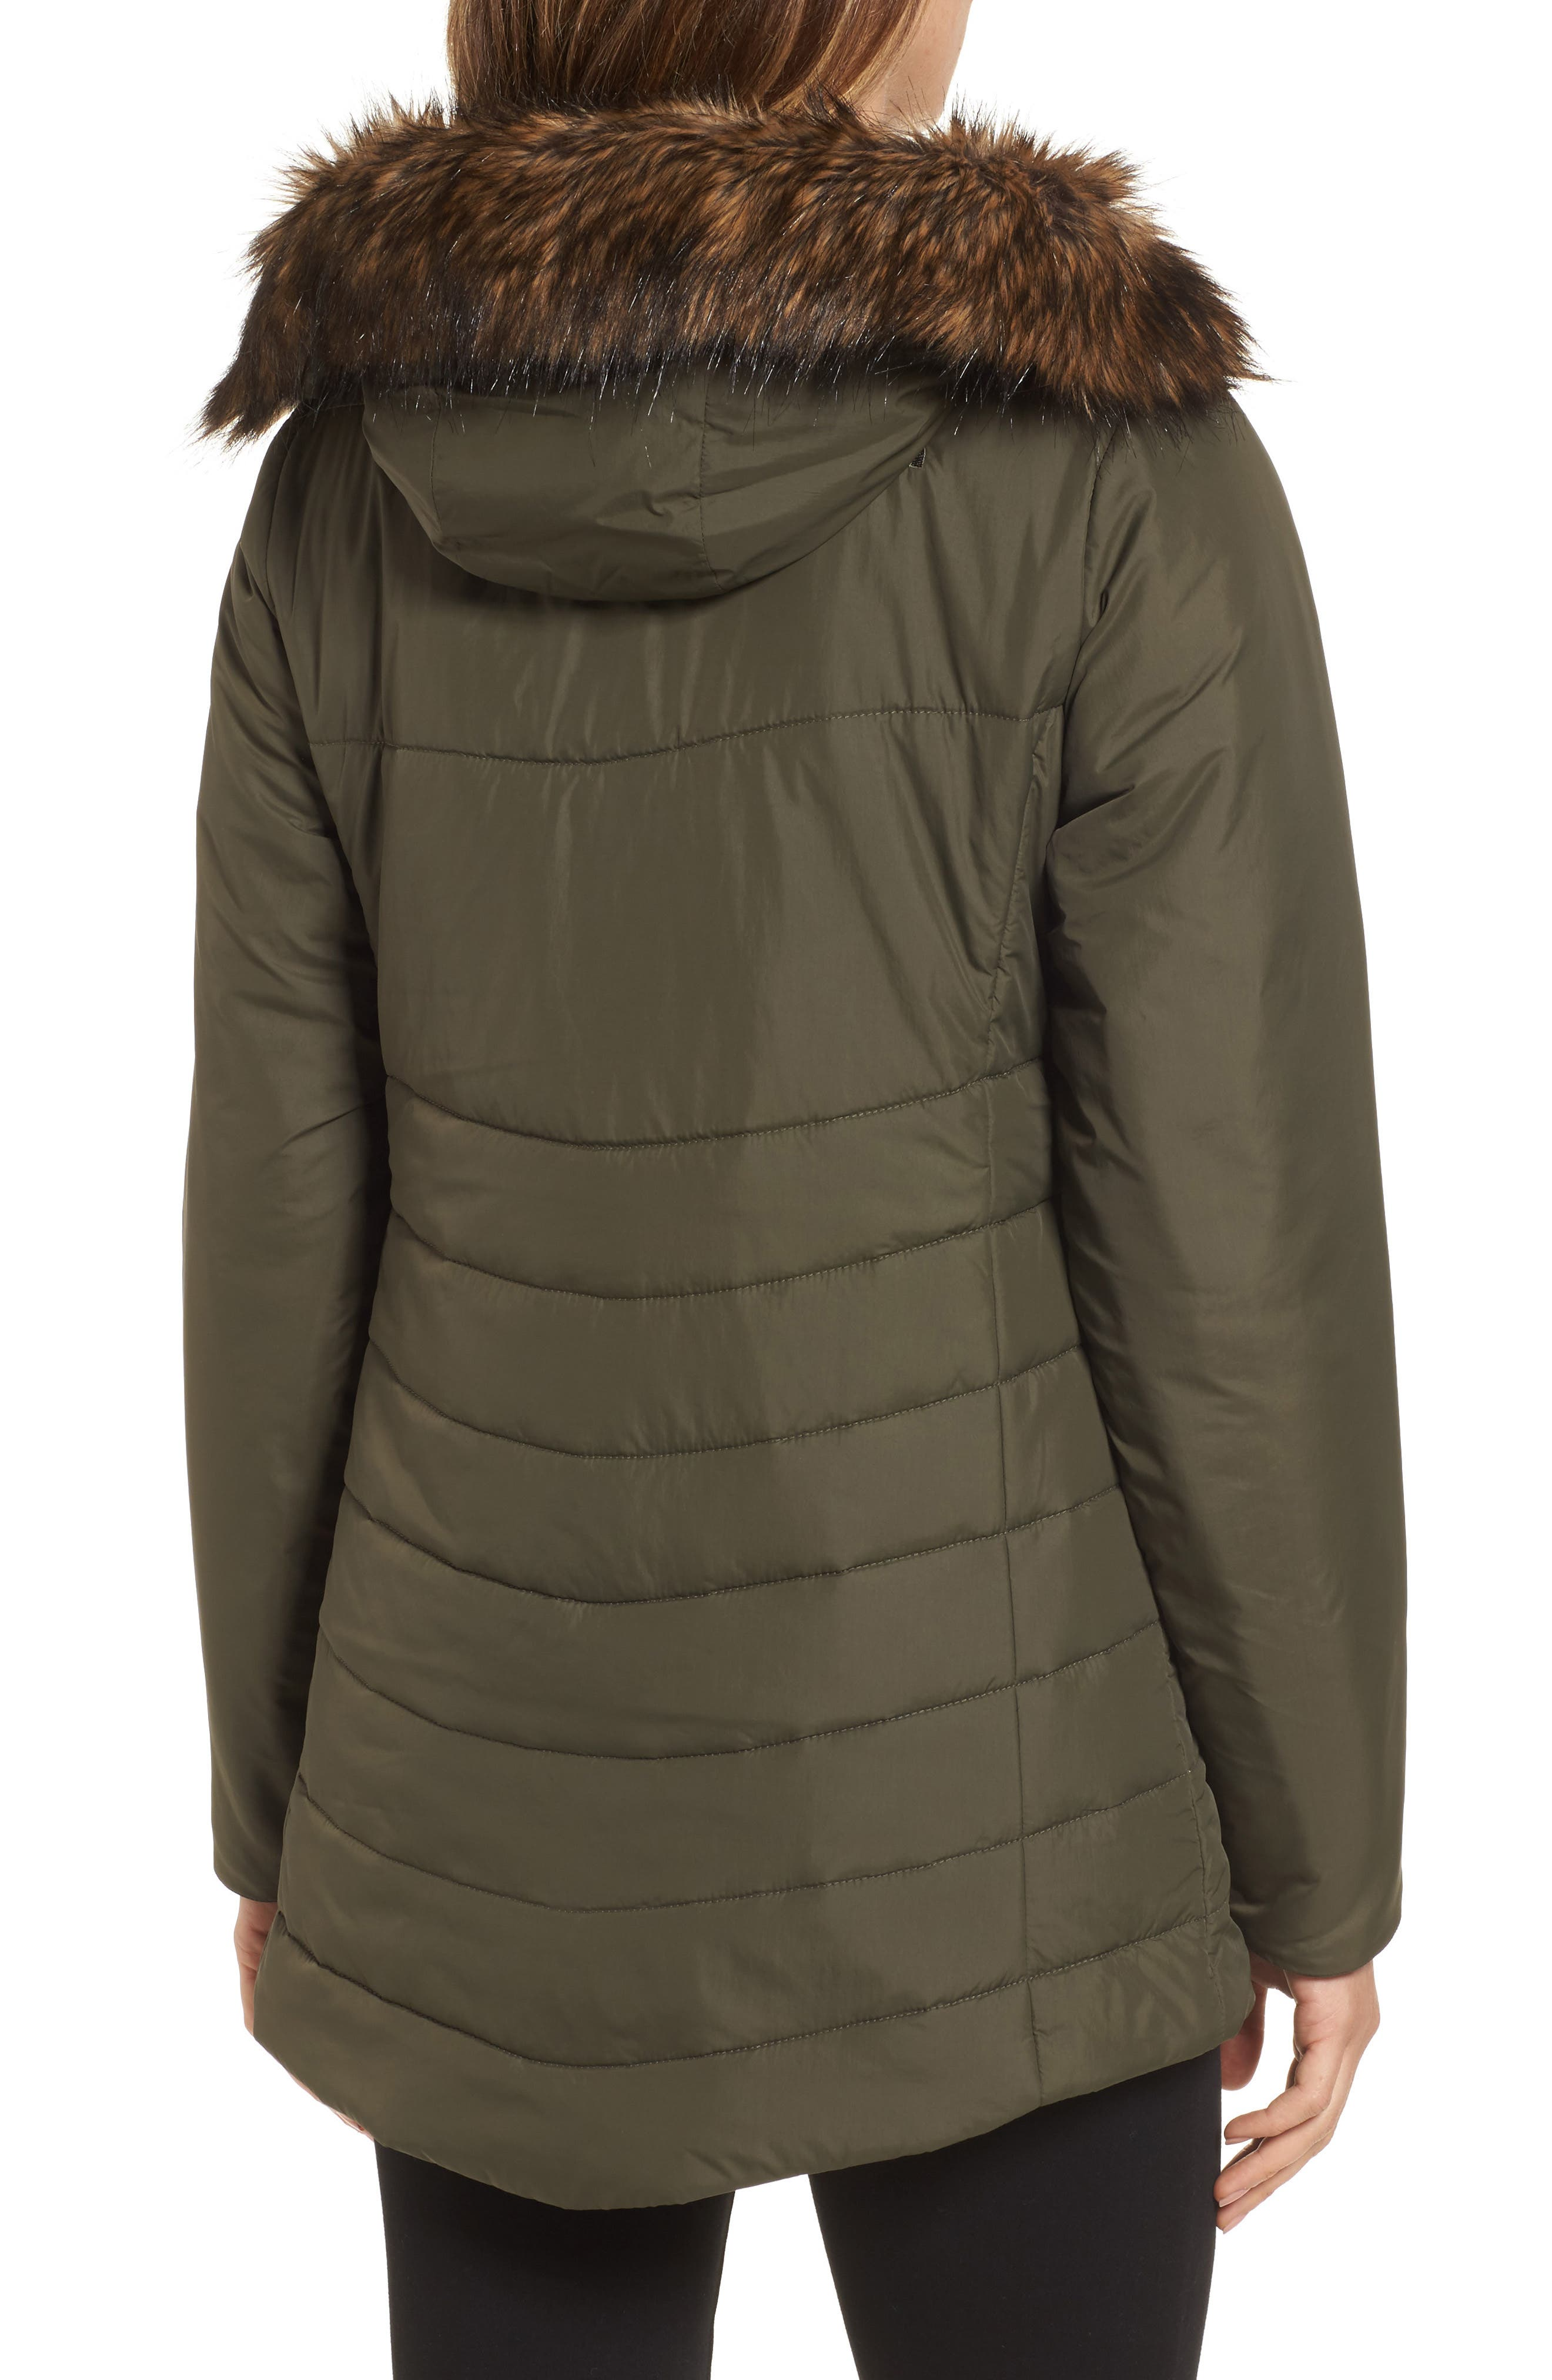 Harway Heatseeker<sup>™</sup> Water-Resistant Jacket with Faux Fur Trim,                             Alternate thumbnail 2, color,                             New Taupe Green